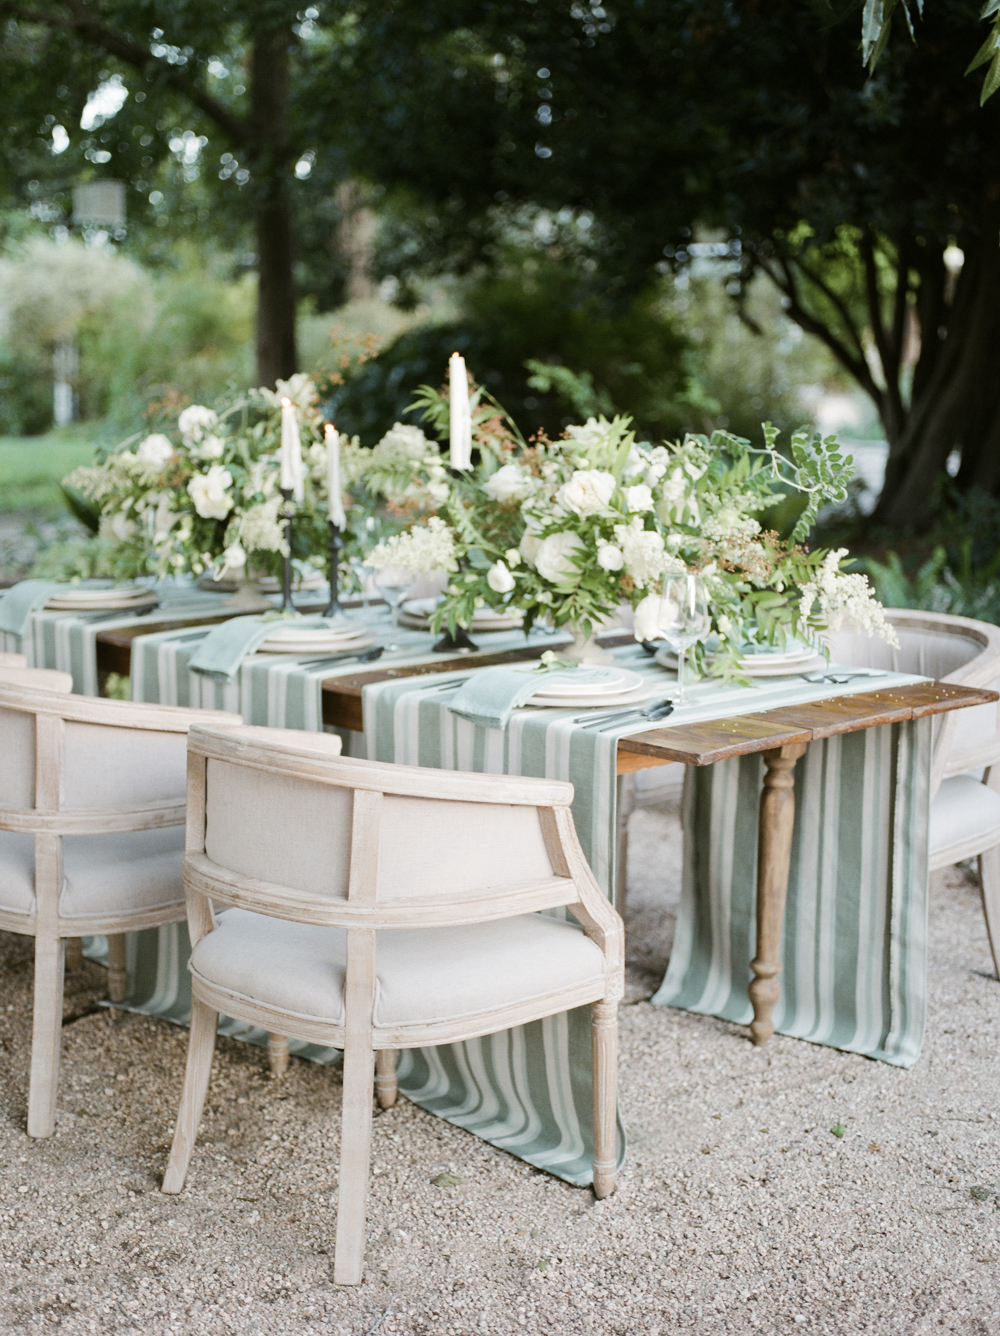 christine-gosch-barr-mansion-austin-wedding-venues-venue-simple-film-photographer-wedding-sparrow-alexandra-grecco-sprout-floals-feathers-and-frosting-classic-inspired-photography-mayhar-design22.jpg